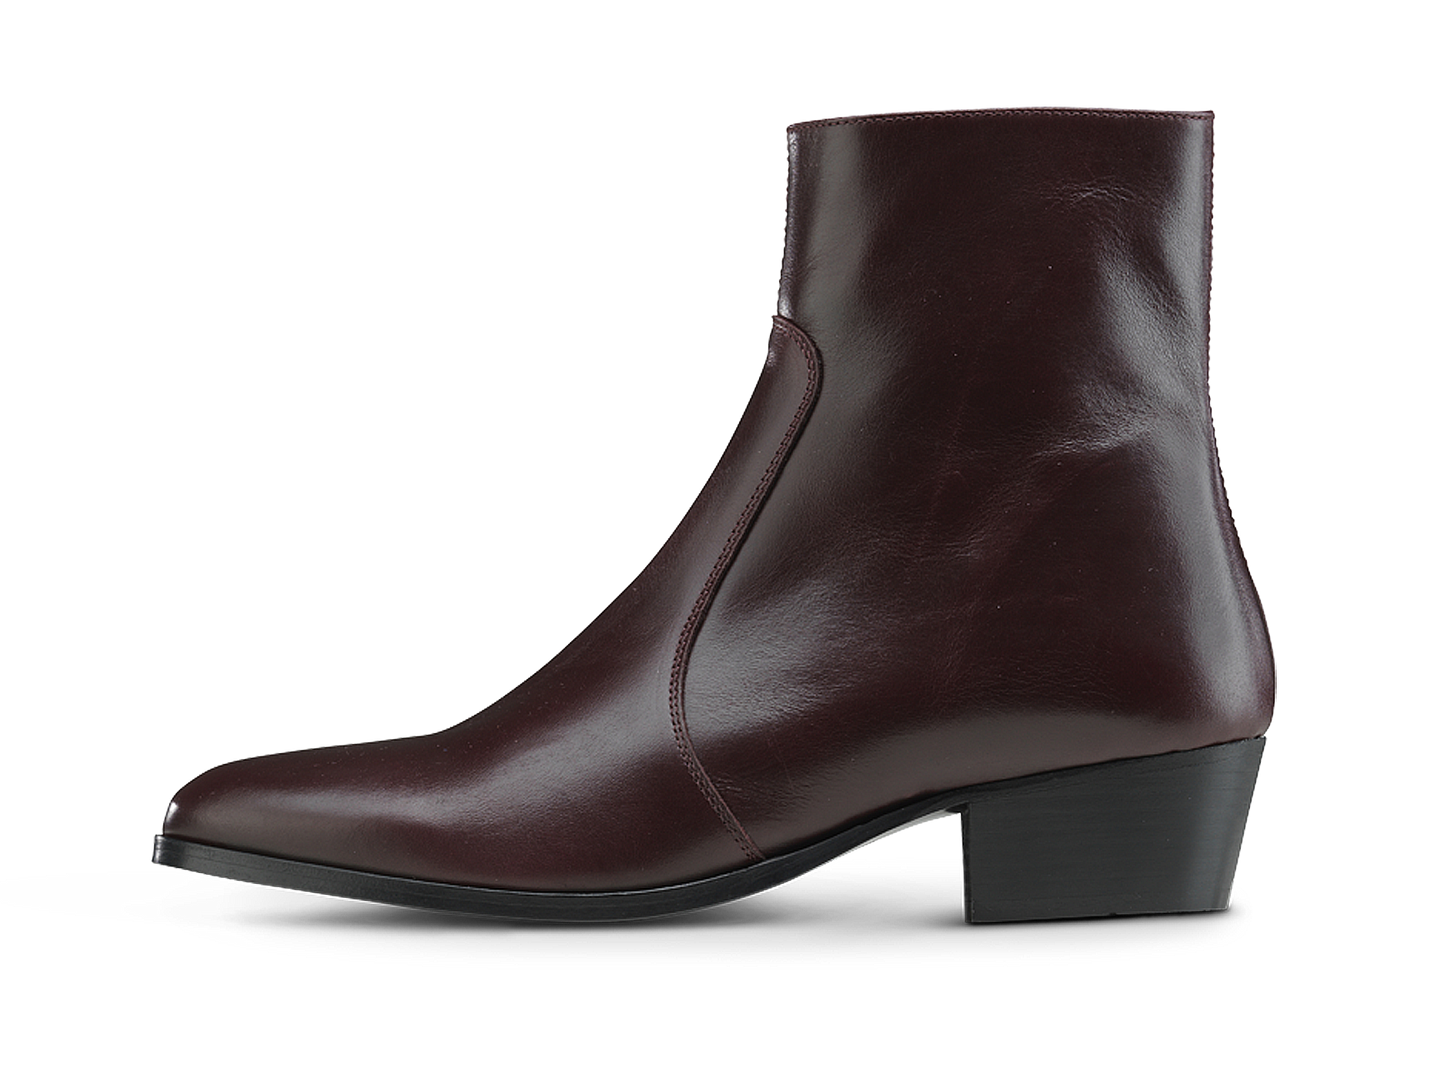 Zimmerman Zip Boot - Burgundy - Everyday Hero